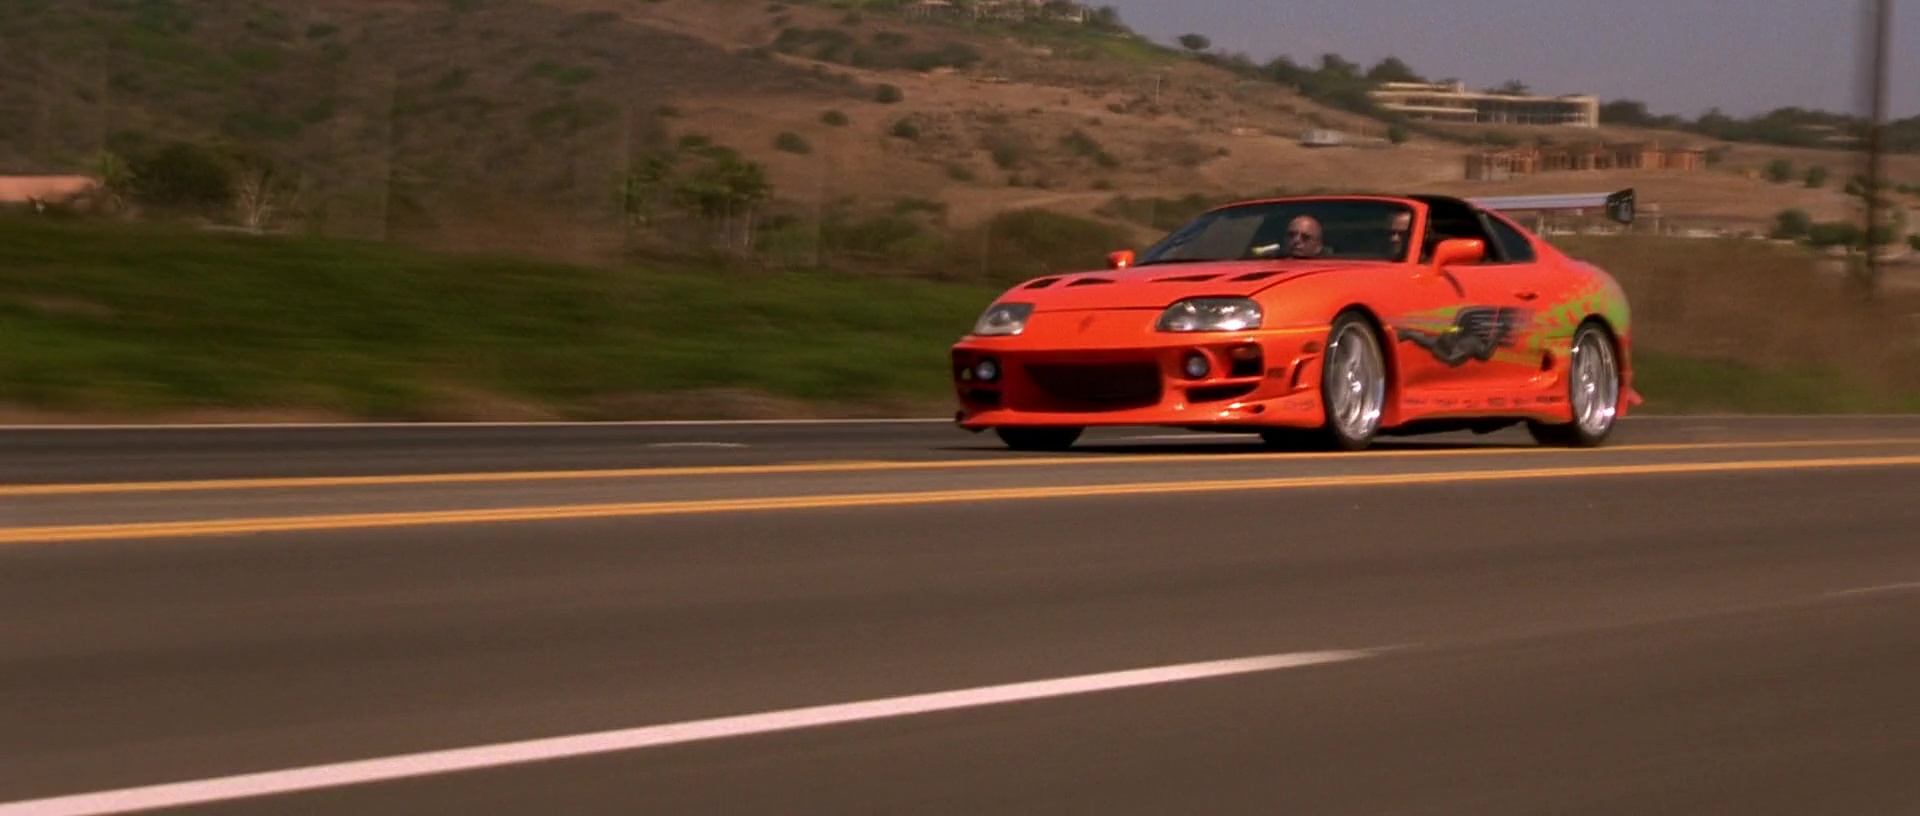 Image Brian Amp Dom Toyota Supra Jpg The Fast And The